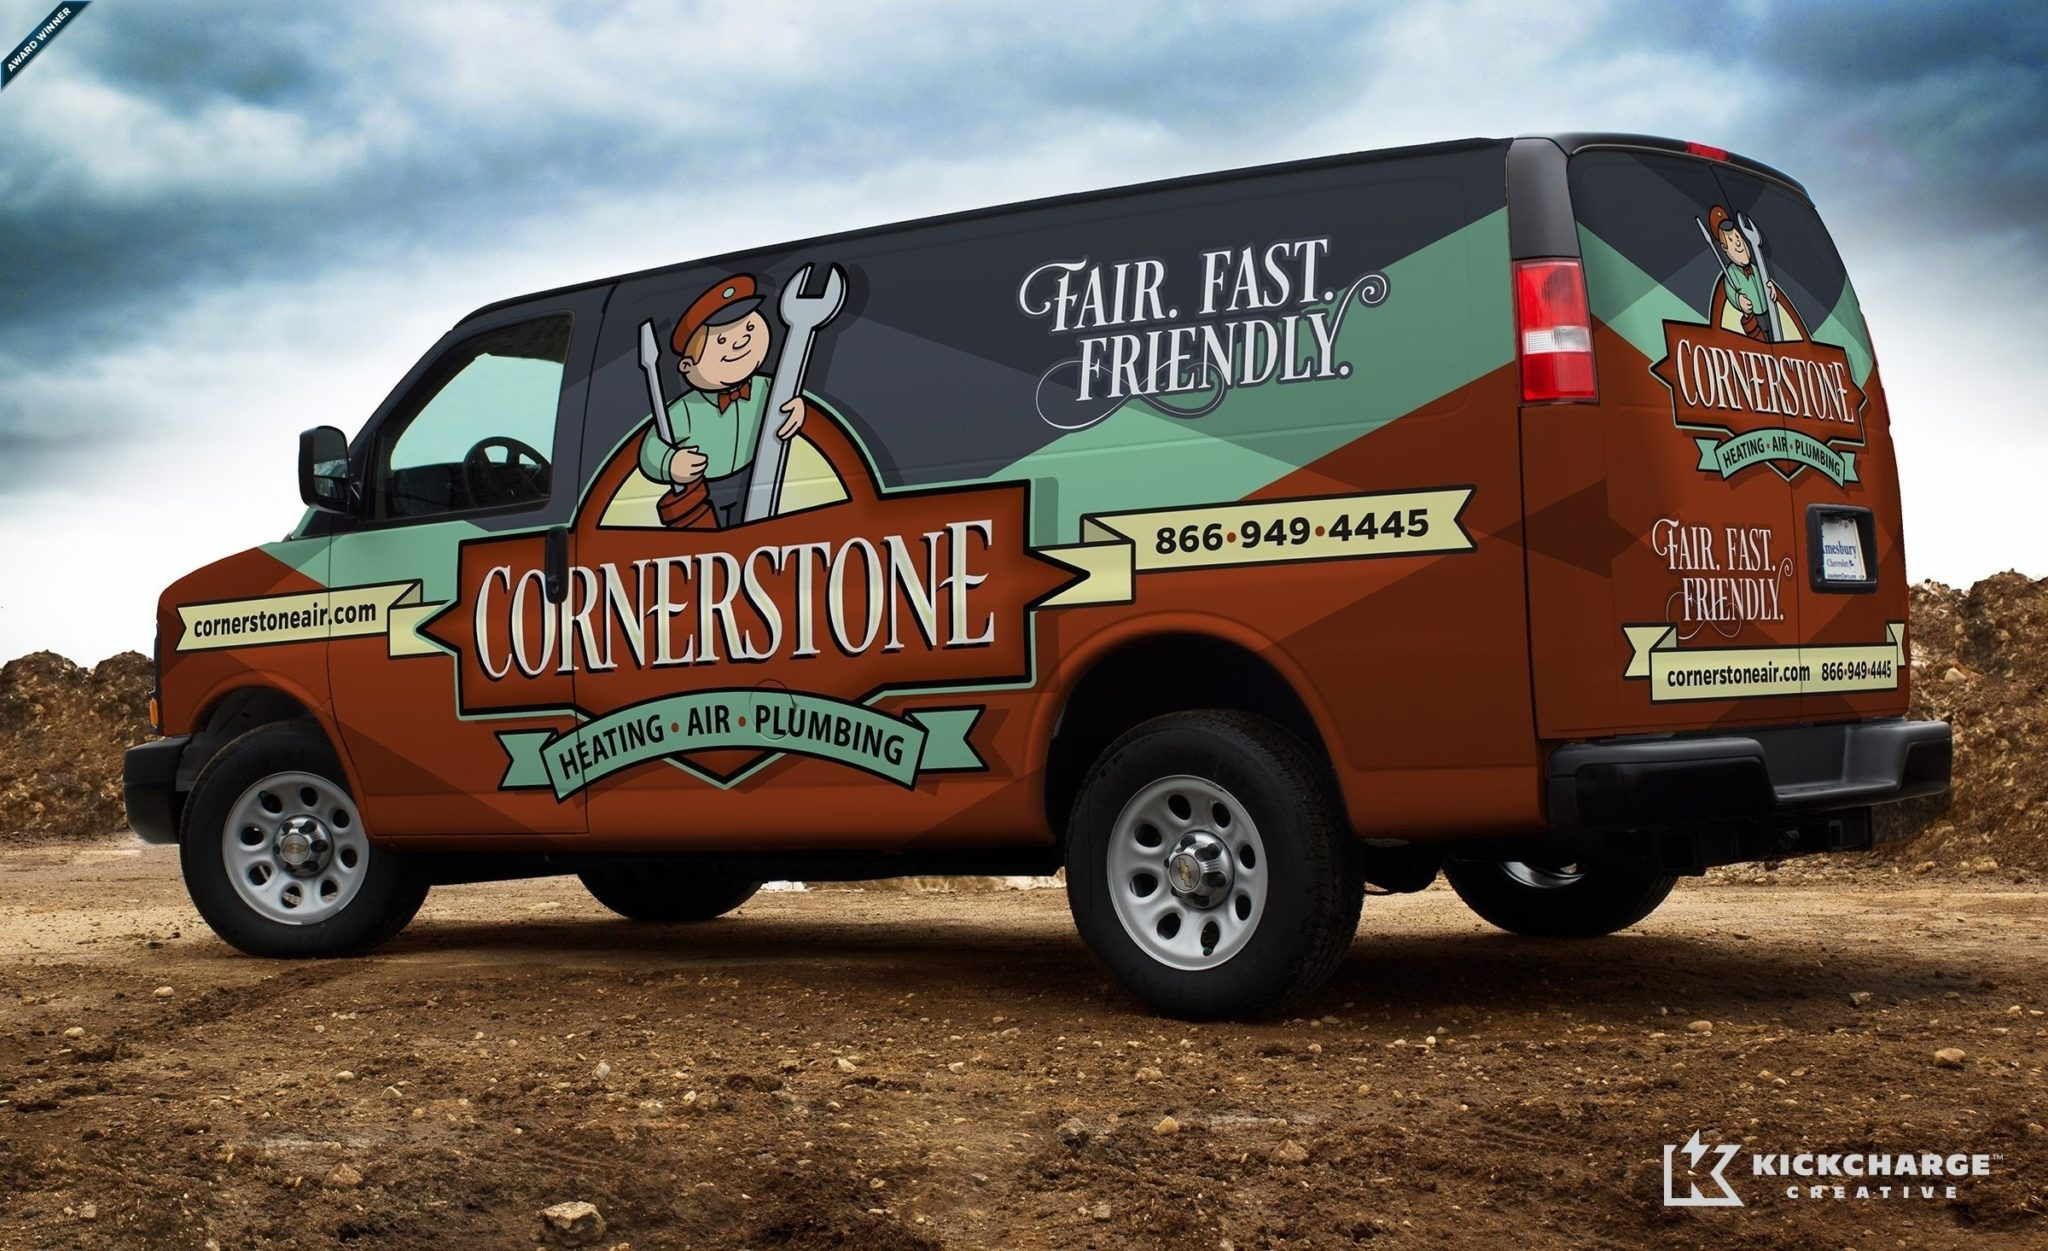 cornerstone air, heating & plumbing